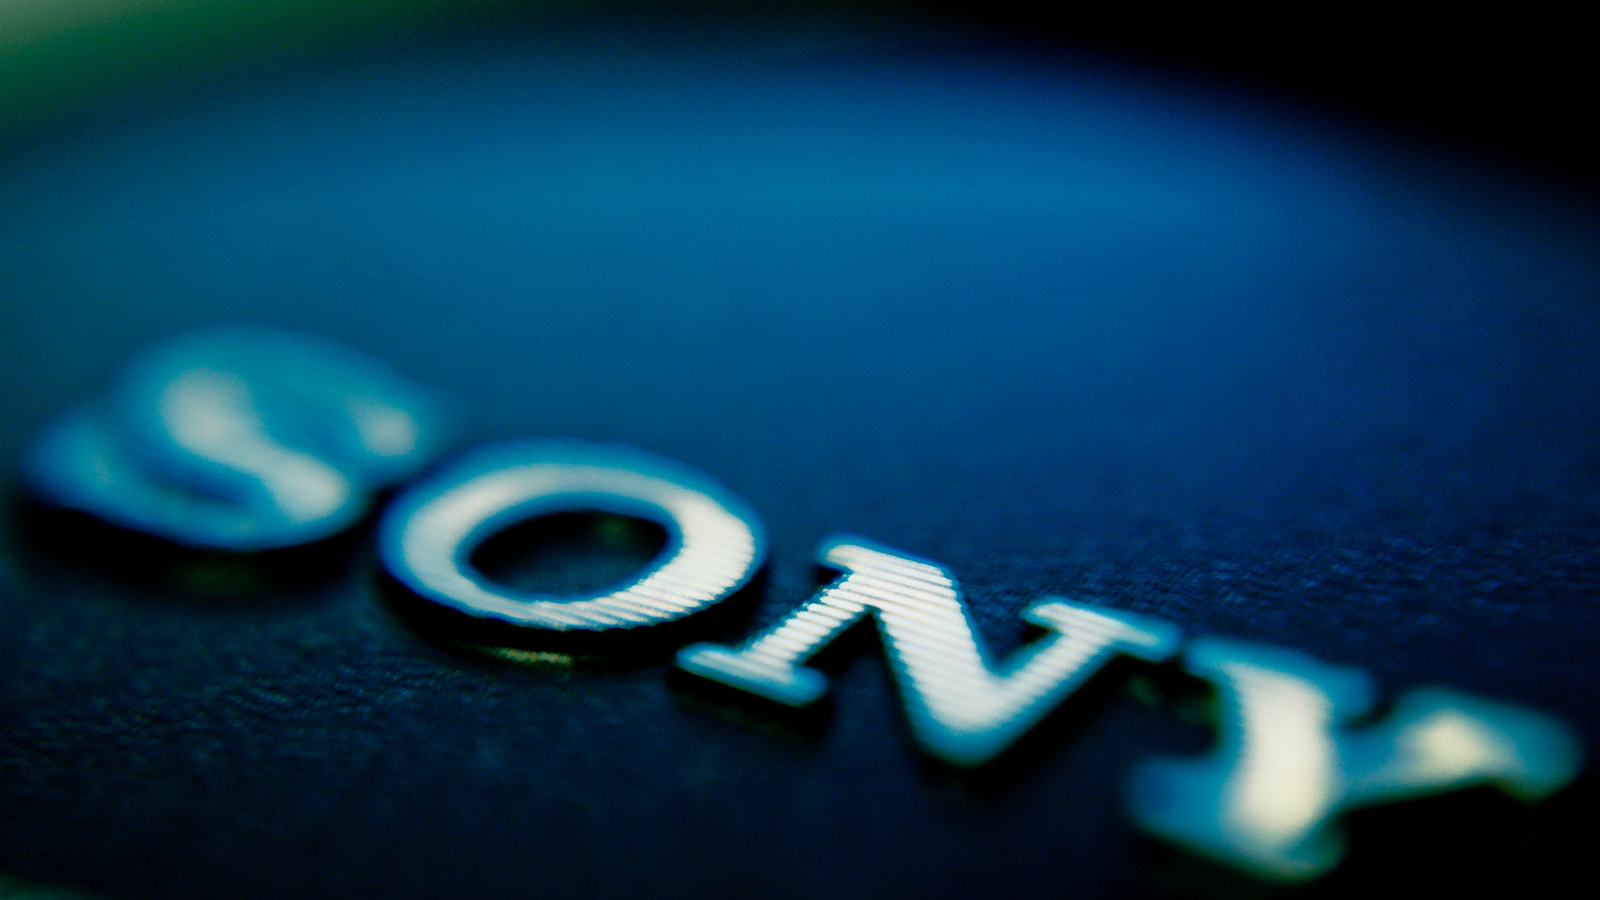 Sony ties up with Panasonic to develop 300GB disc by 2015